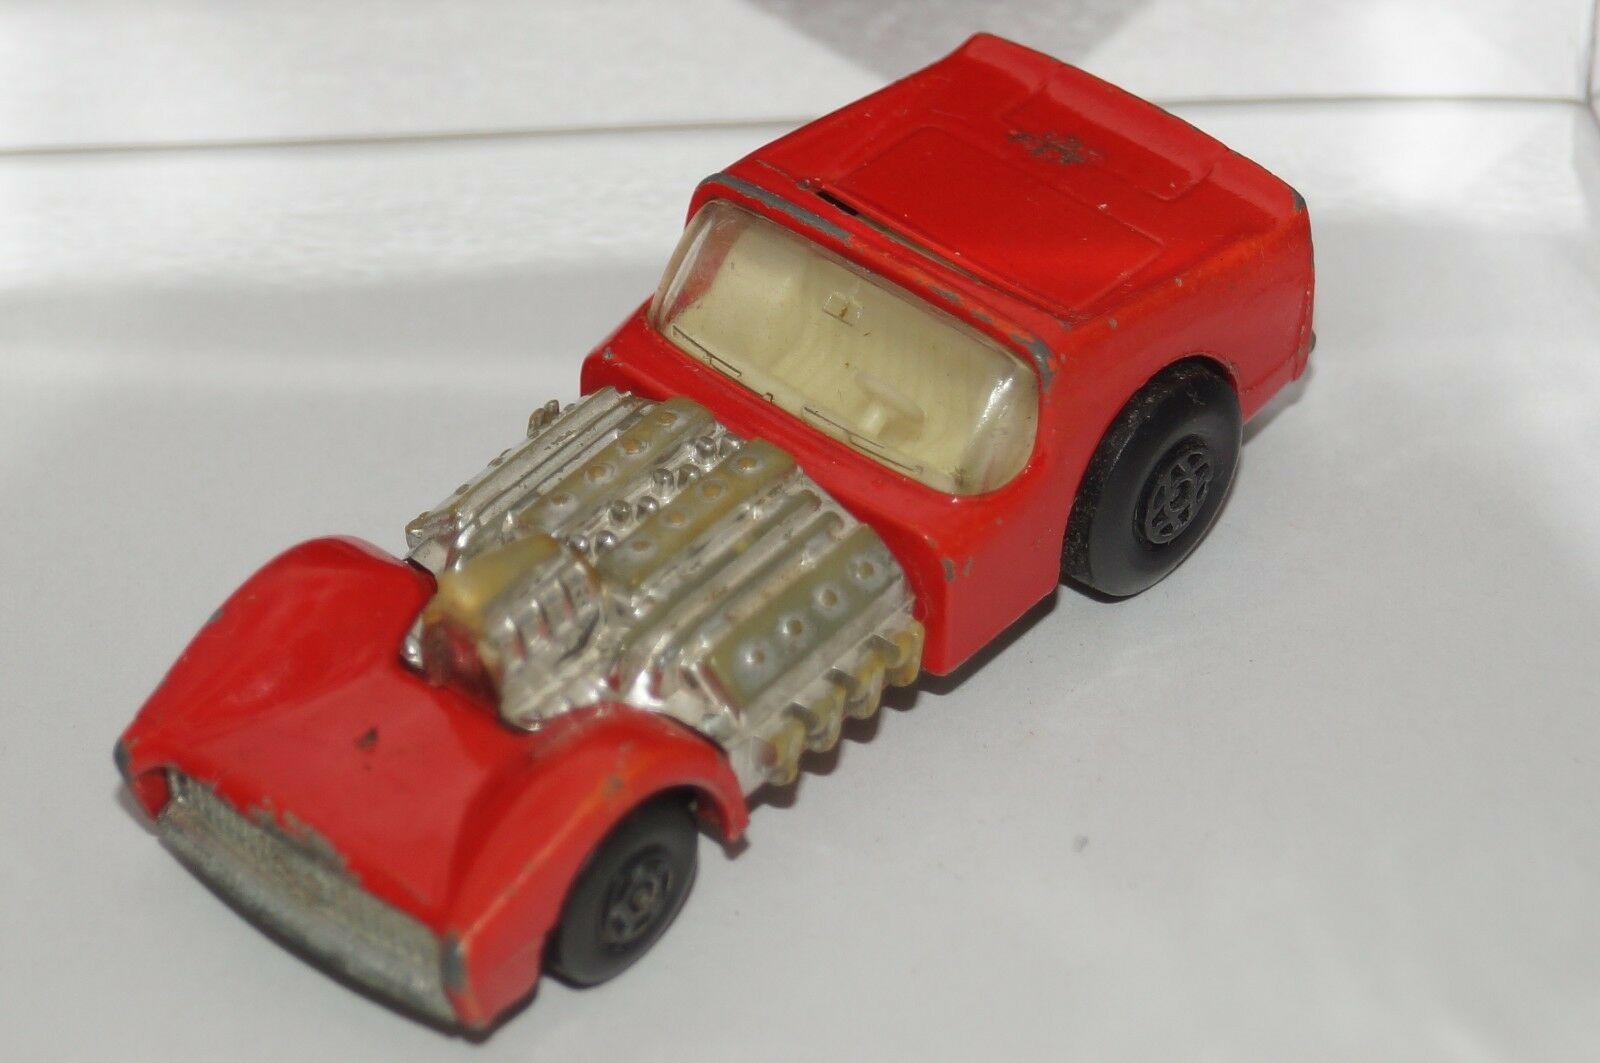 ORIGINAL Matchbox Superfast Road Dragster - No 19  - rouge Couleur - Chrome Motor  Stade Cadeaux